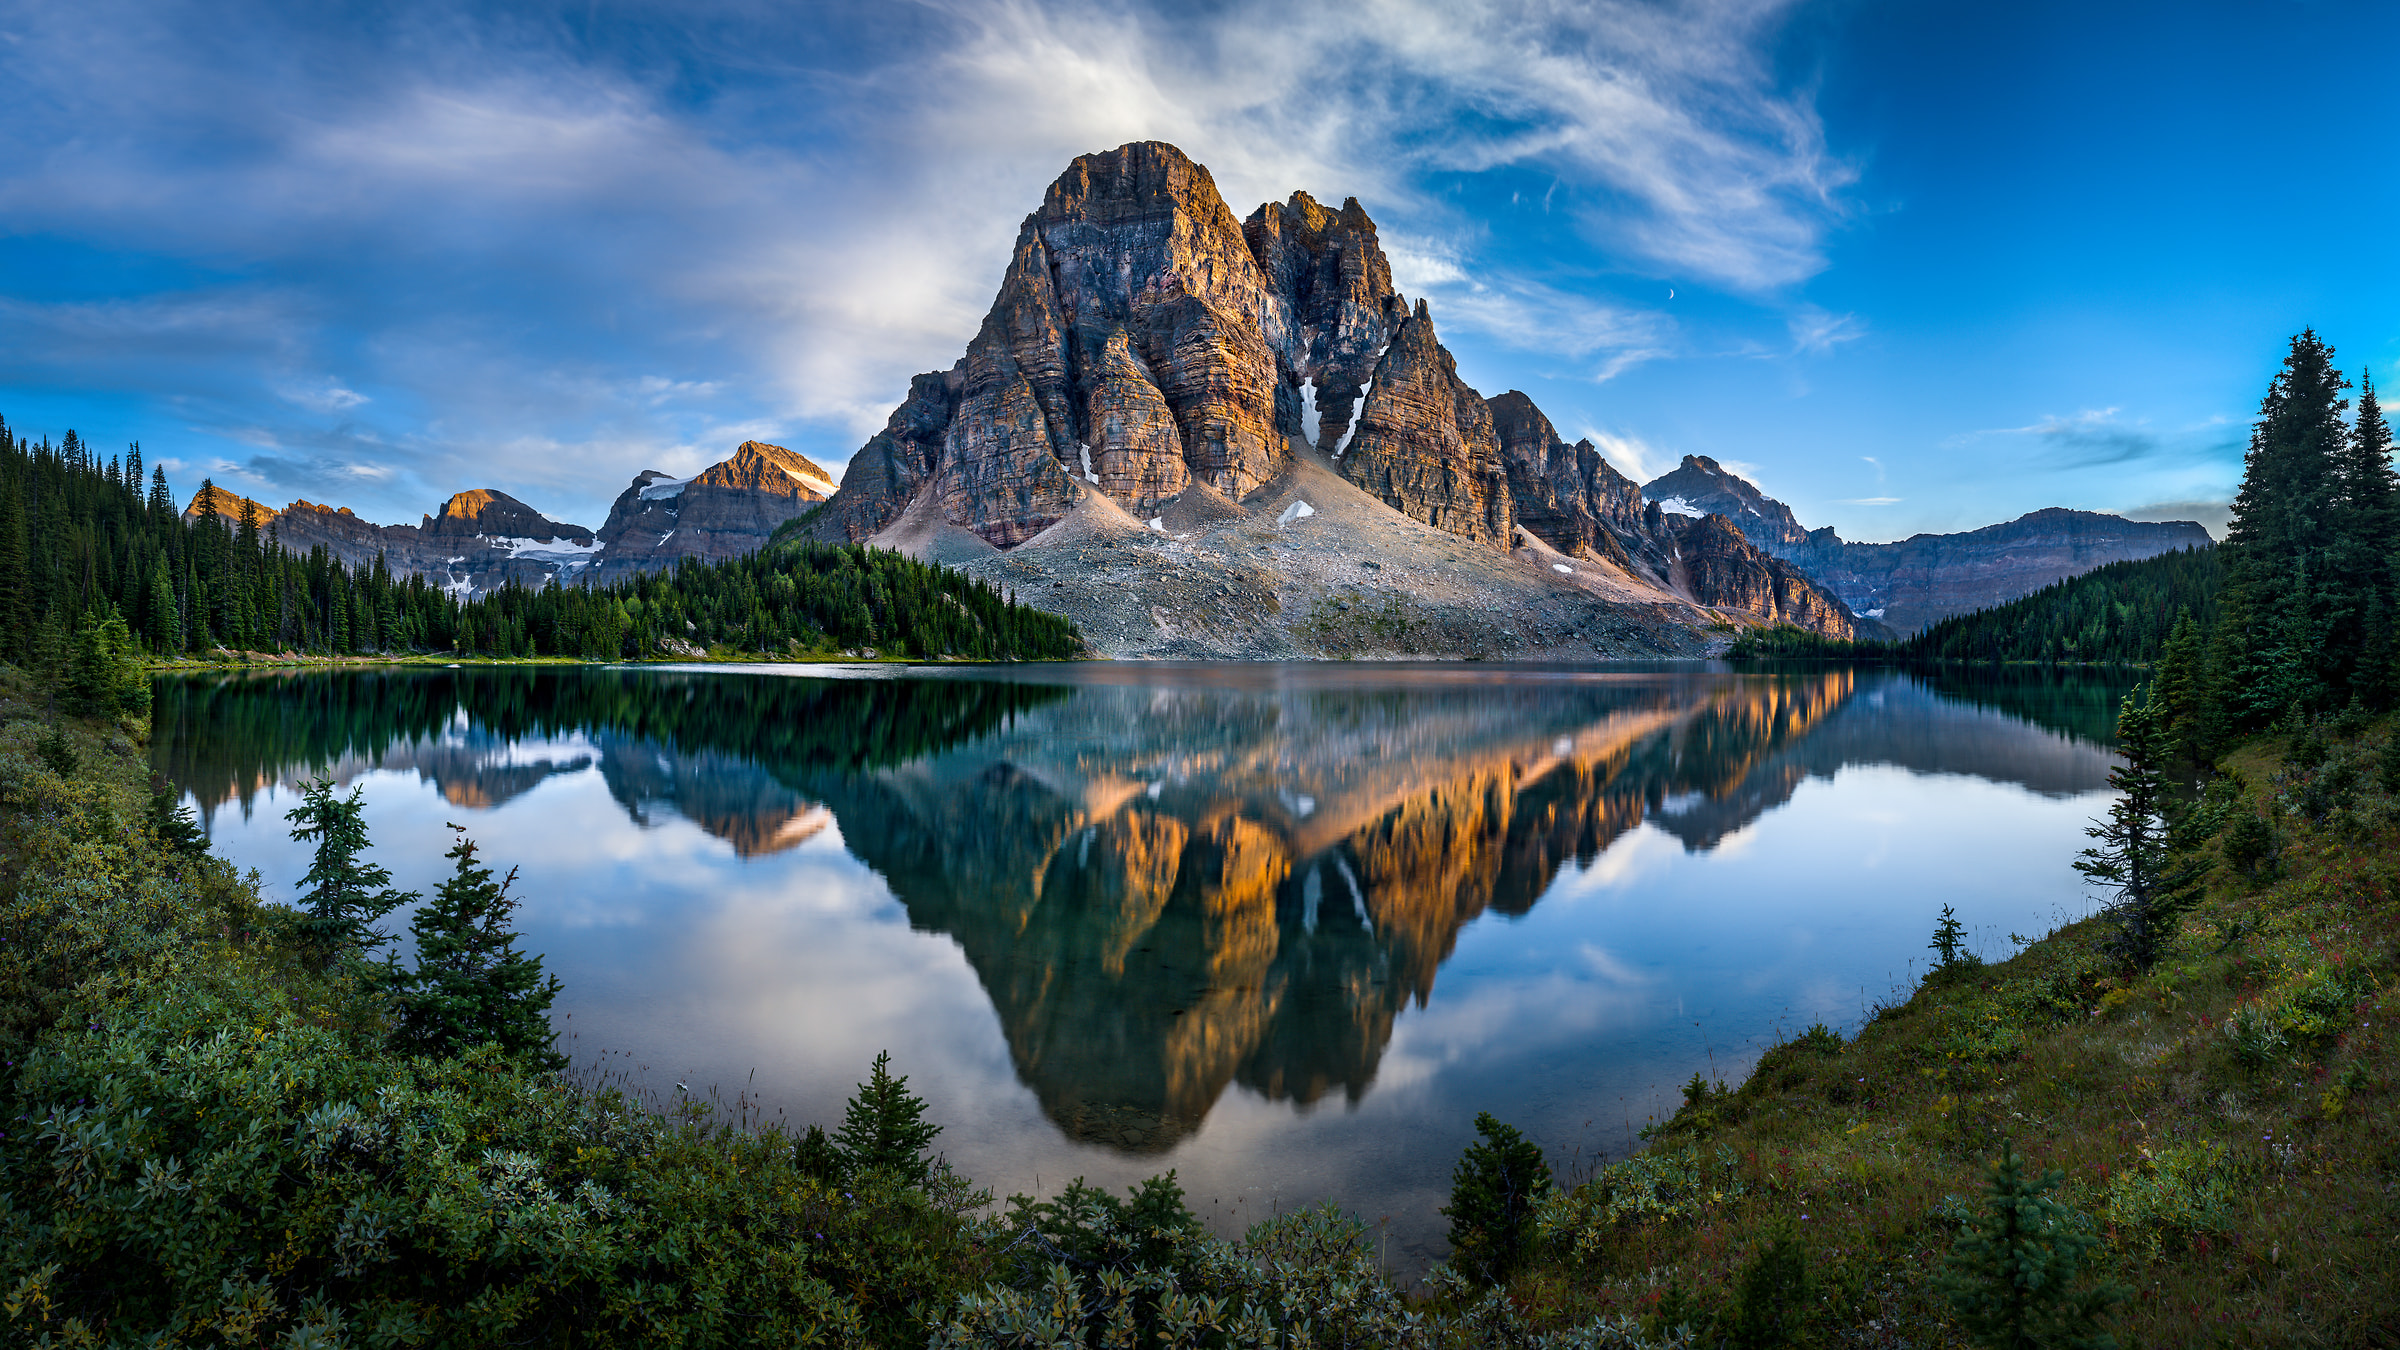 339 megapixels! A very high resolution, large-format VAST photo print of a lake with evergreen trees and a large mountain rockface in the foreground; wilderness landscape photograph created by Tim Shields in Sunburst Mountain, British Columbia, Canada